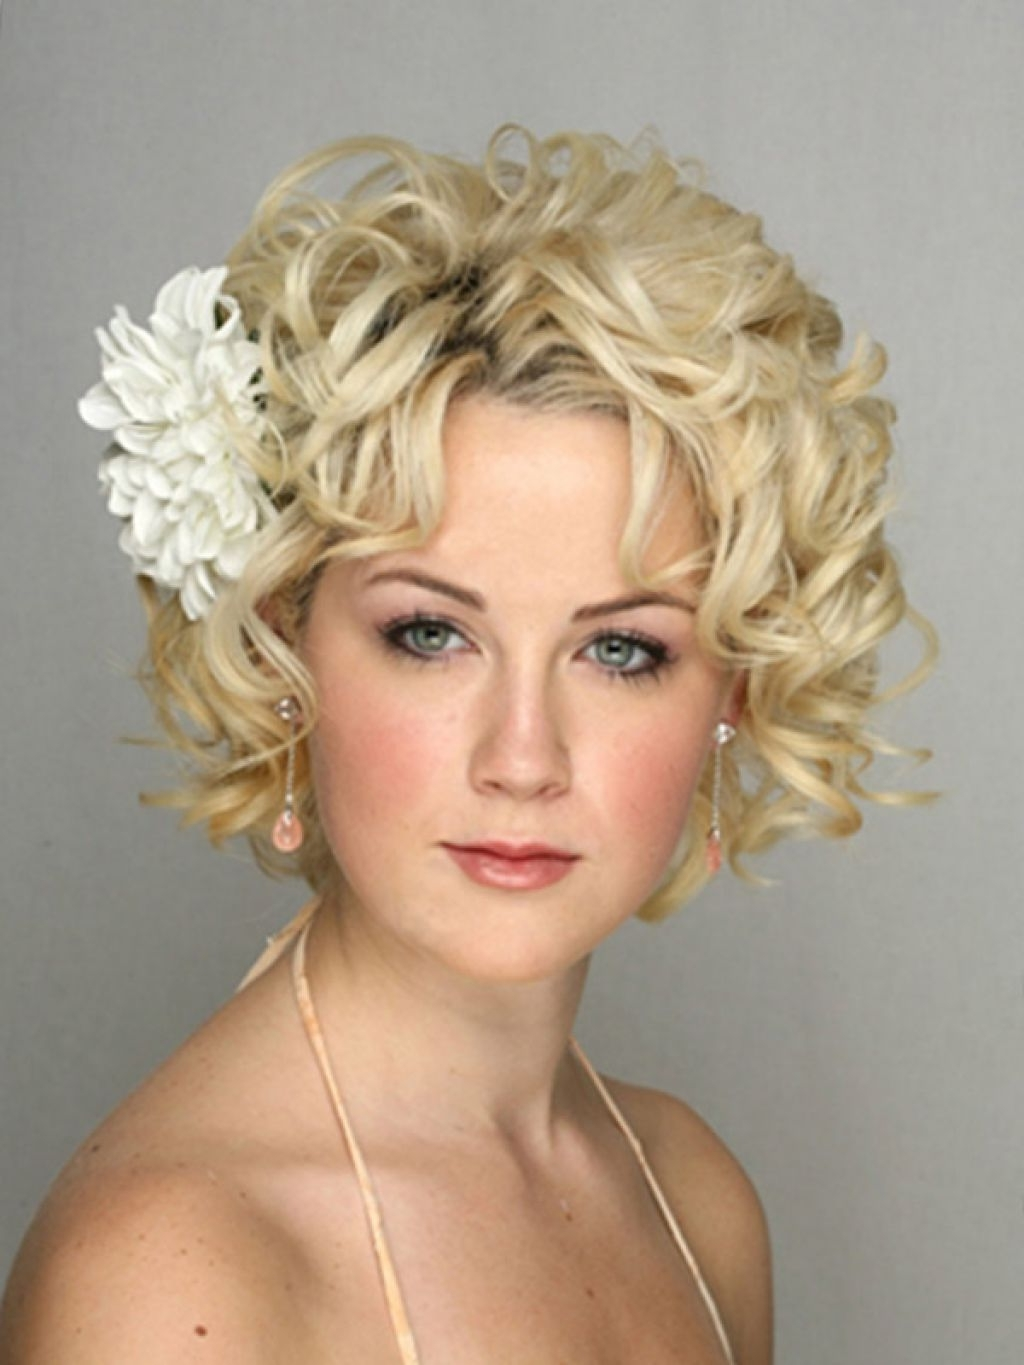 Fashionable Easy Wedding Guest Hairstyles For Short Hair Inside Sponsored Links Sponsored Links Wedding Guest Hairstyles For Medium (View 6 of 15)